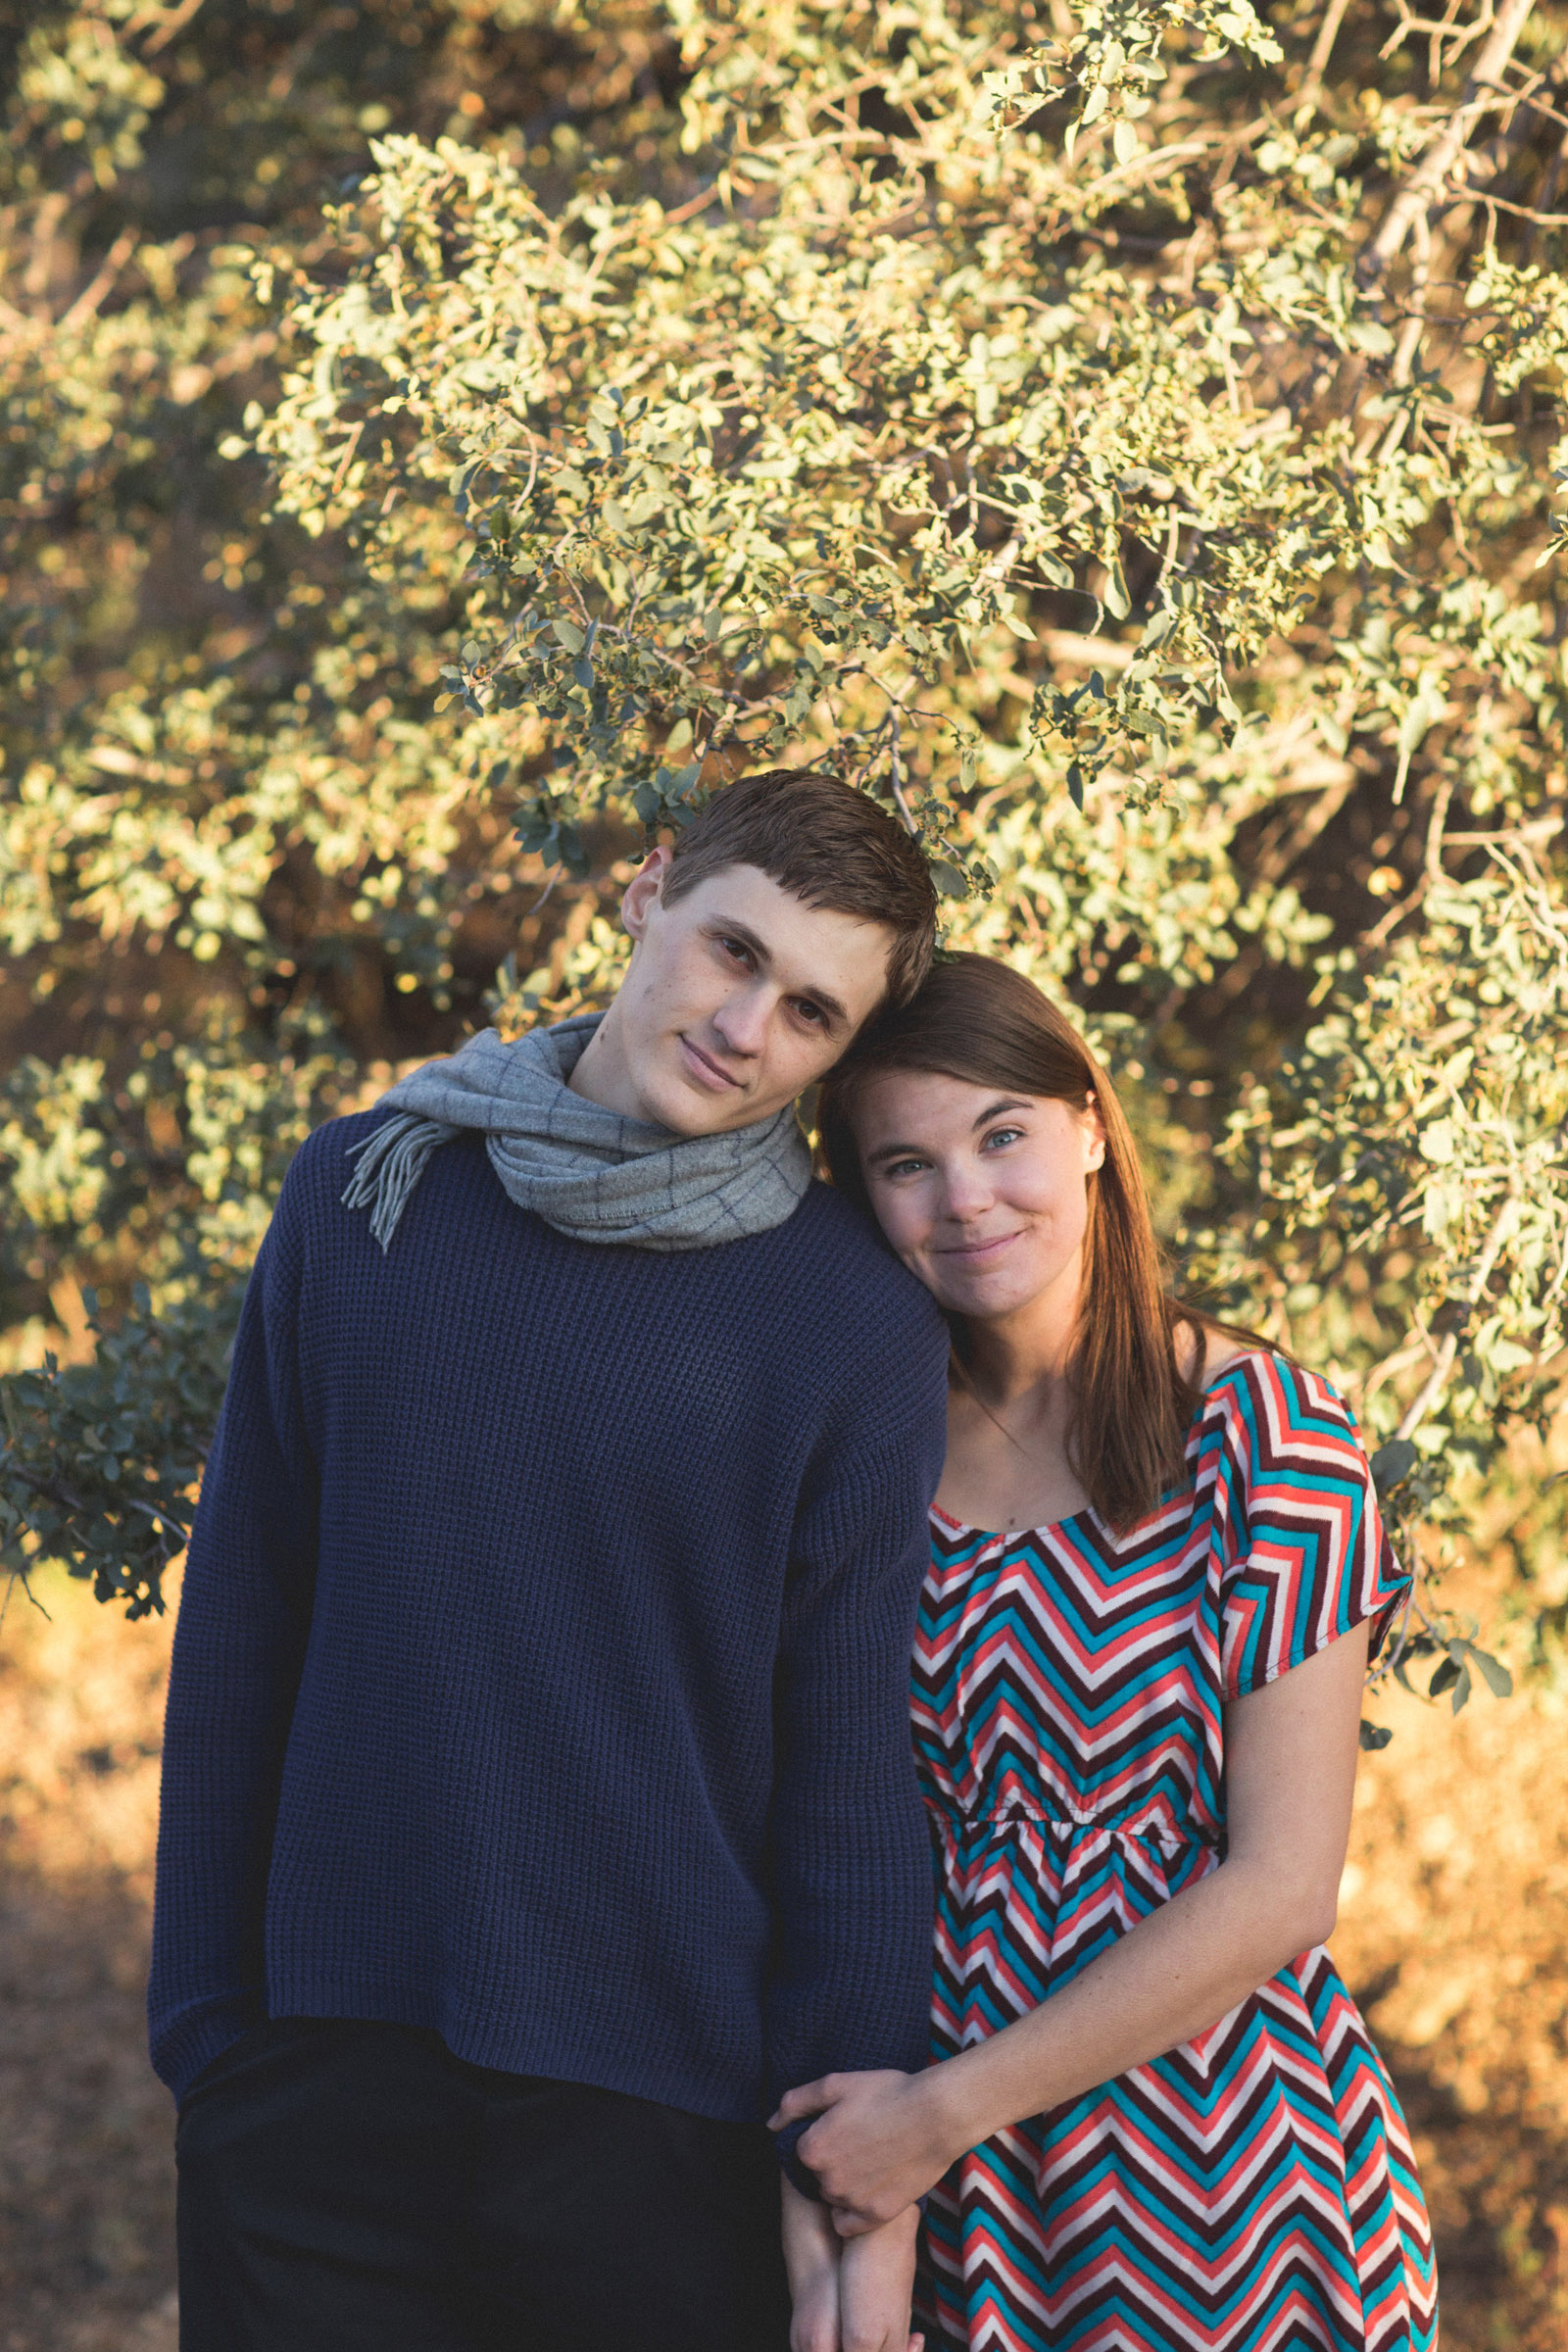 074-engagement-photographers-in-nm-farmington-and-albuquerque